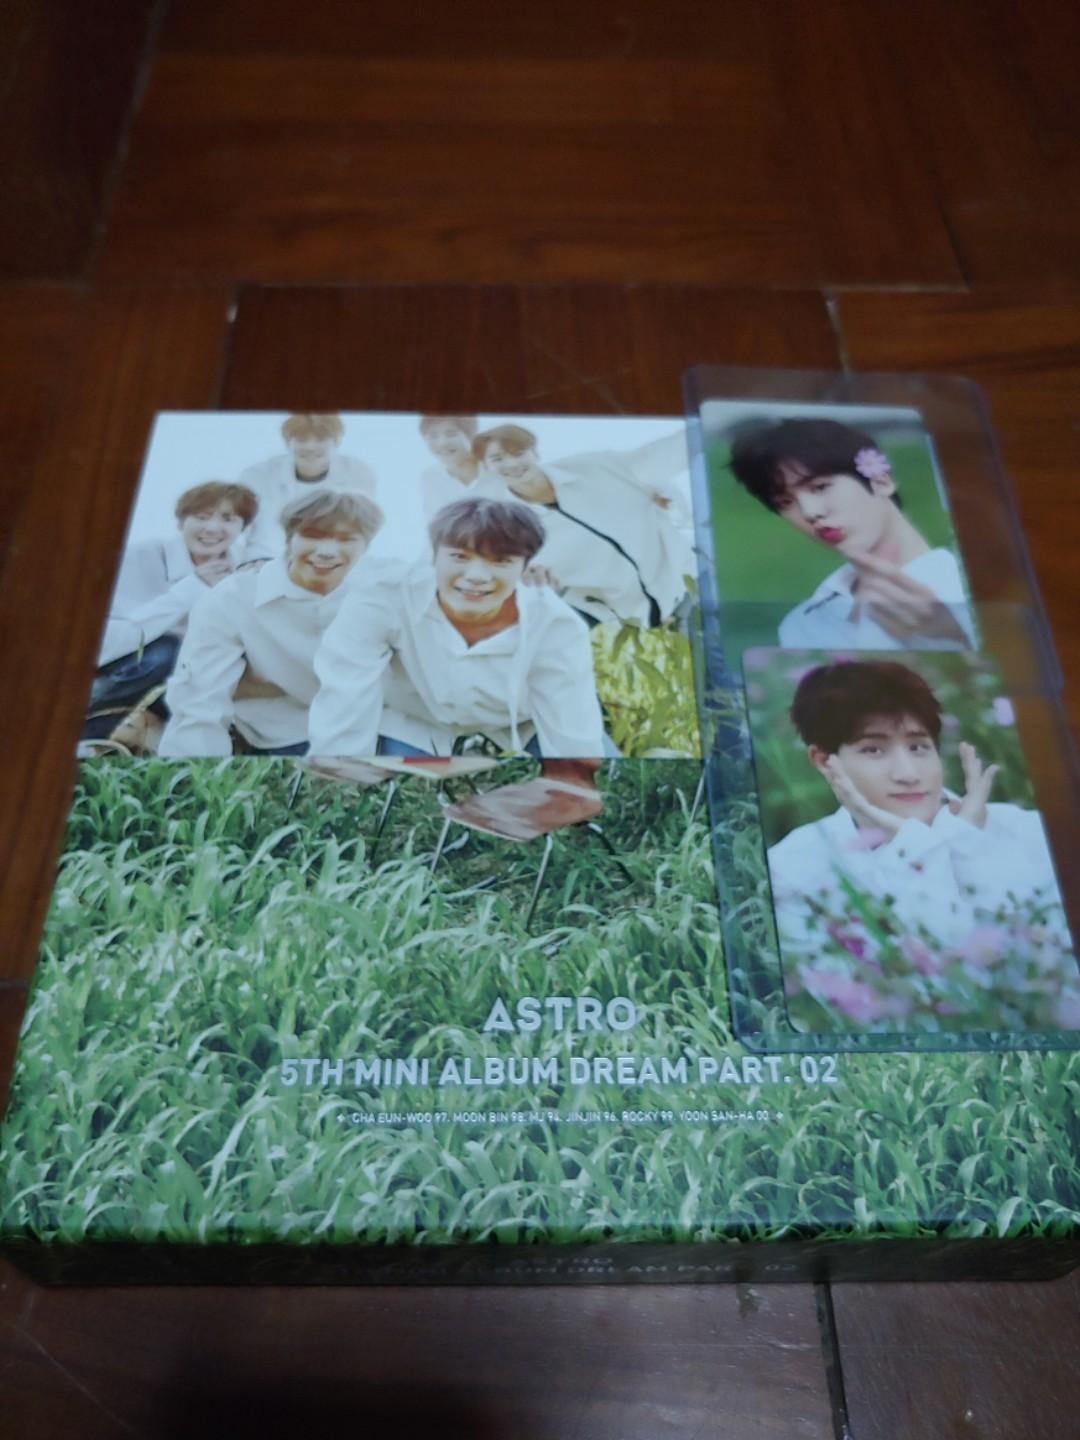 instock astro 5th mini album dream pt2 1565090444 e4848a8f progressive